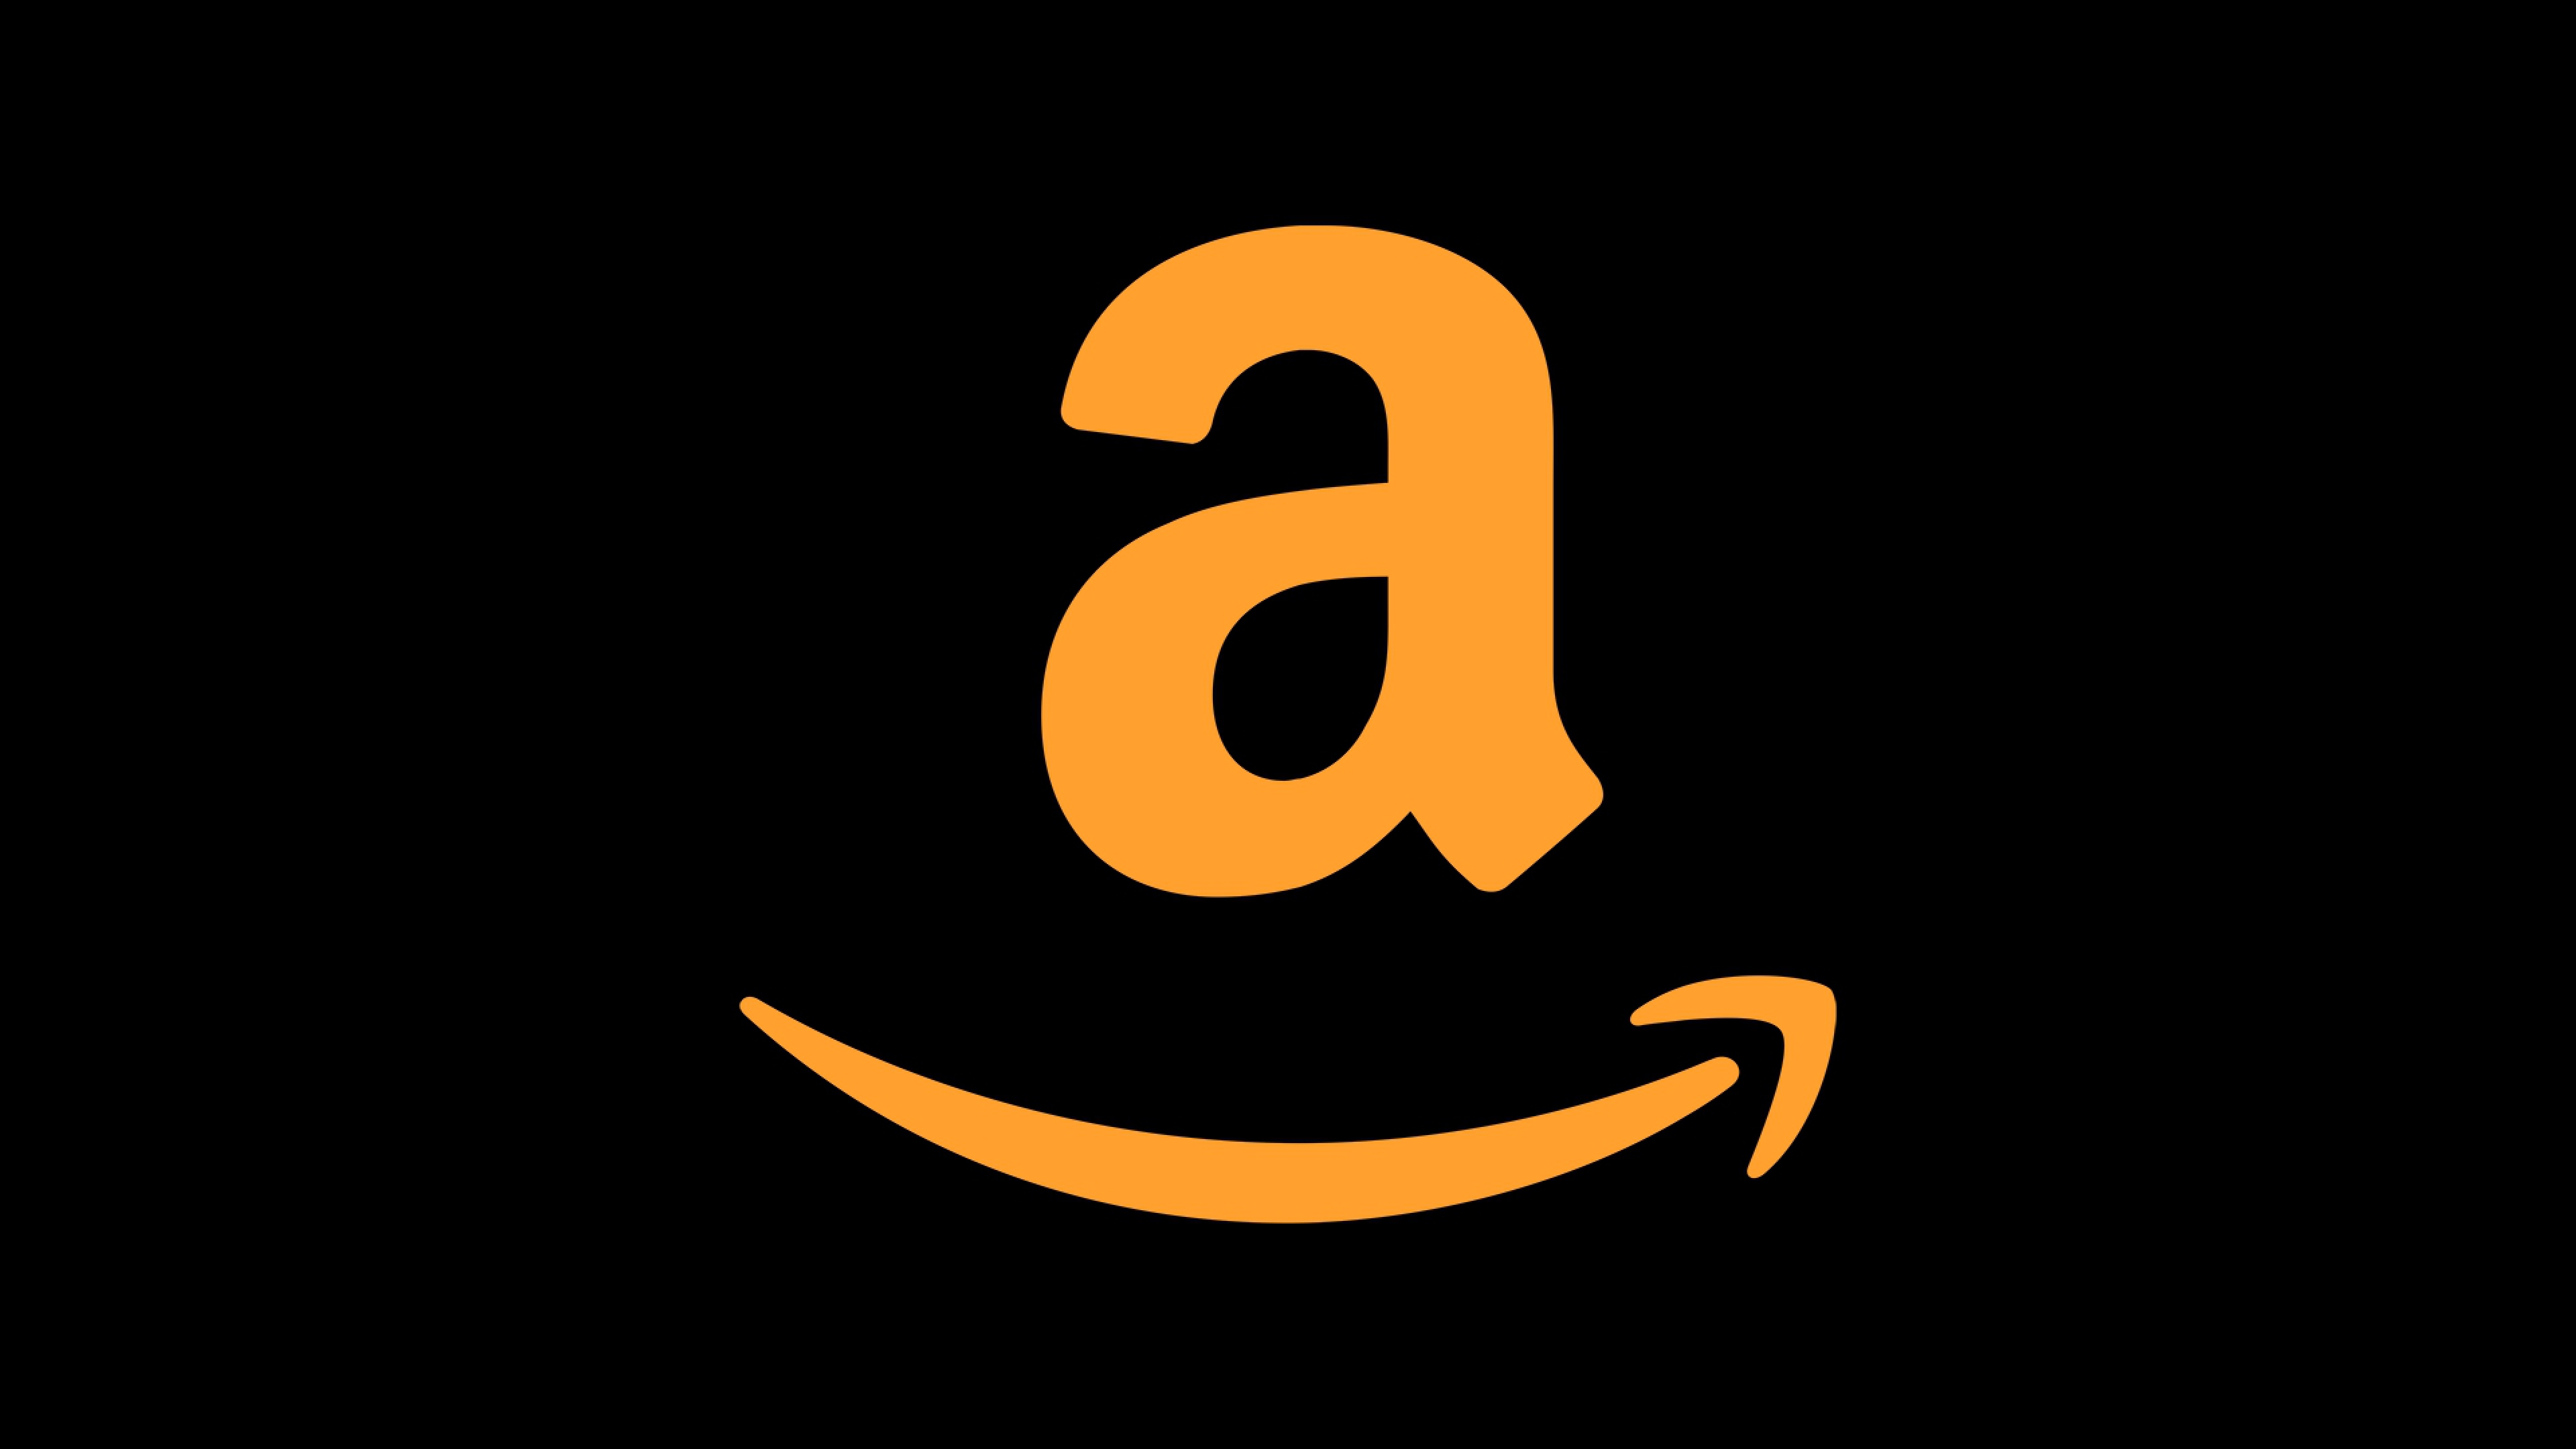 Amazon 4k Logo HD Wallpapers Images Backgrounds Photos